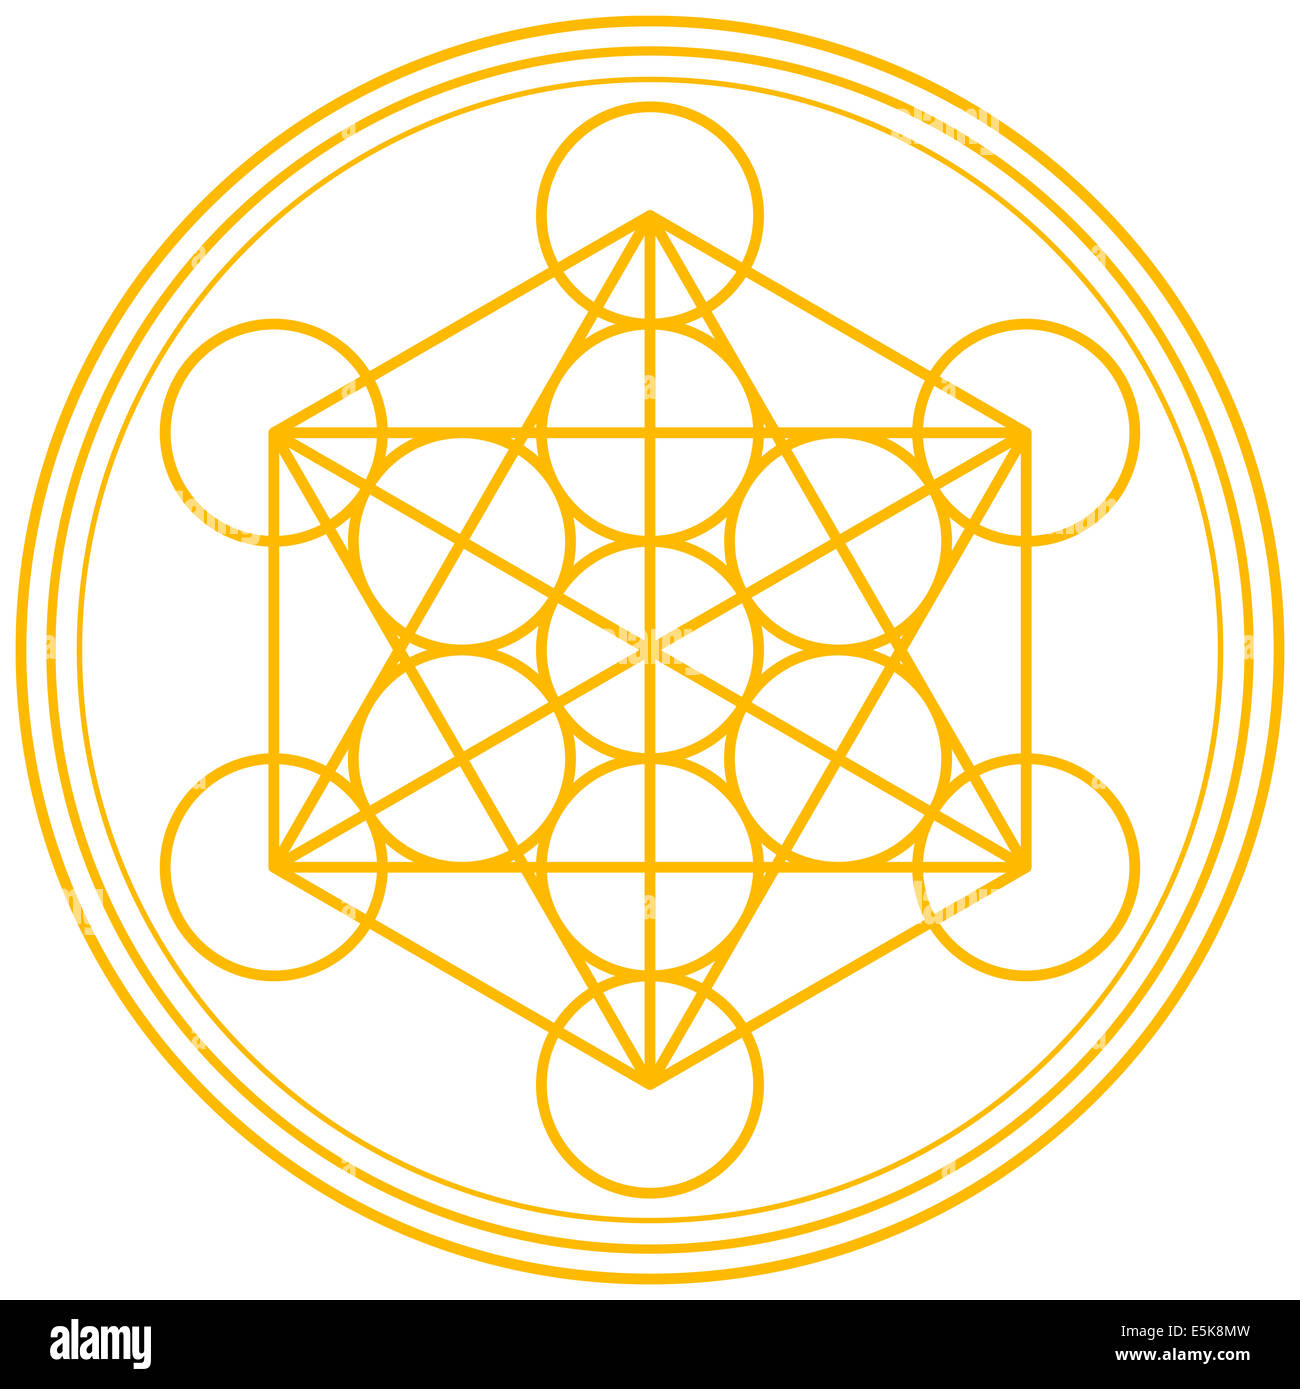 Metatron Cube Gold - Metatrons Cube and Merkaba derived from the Flower of Life, an ancient symbol. Illustration - Stock Image